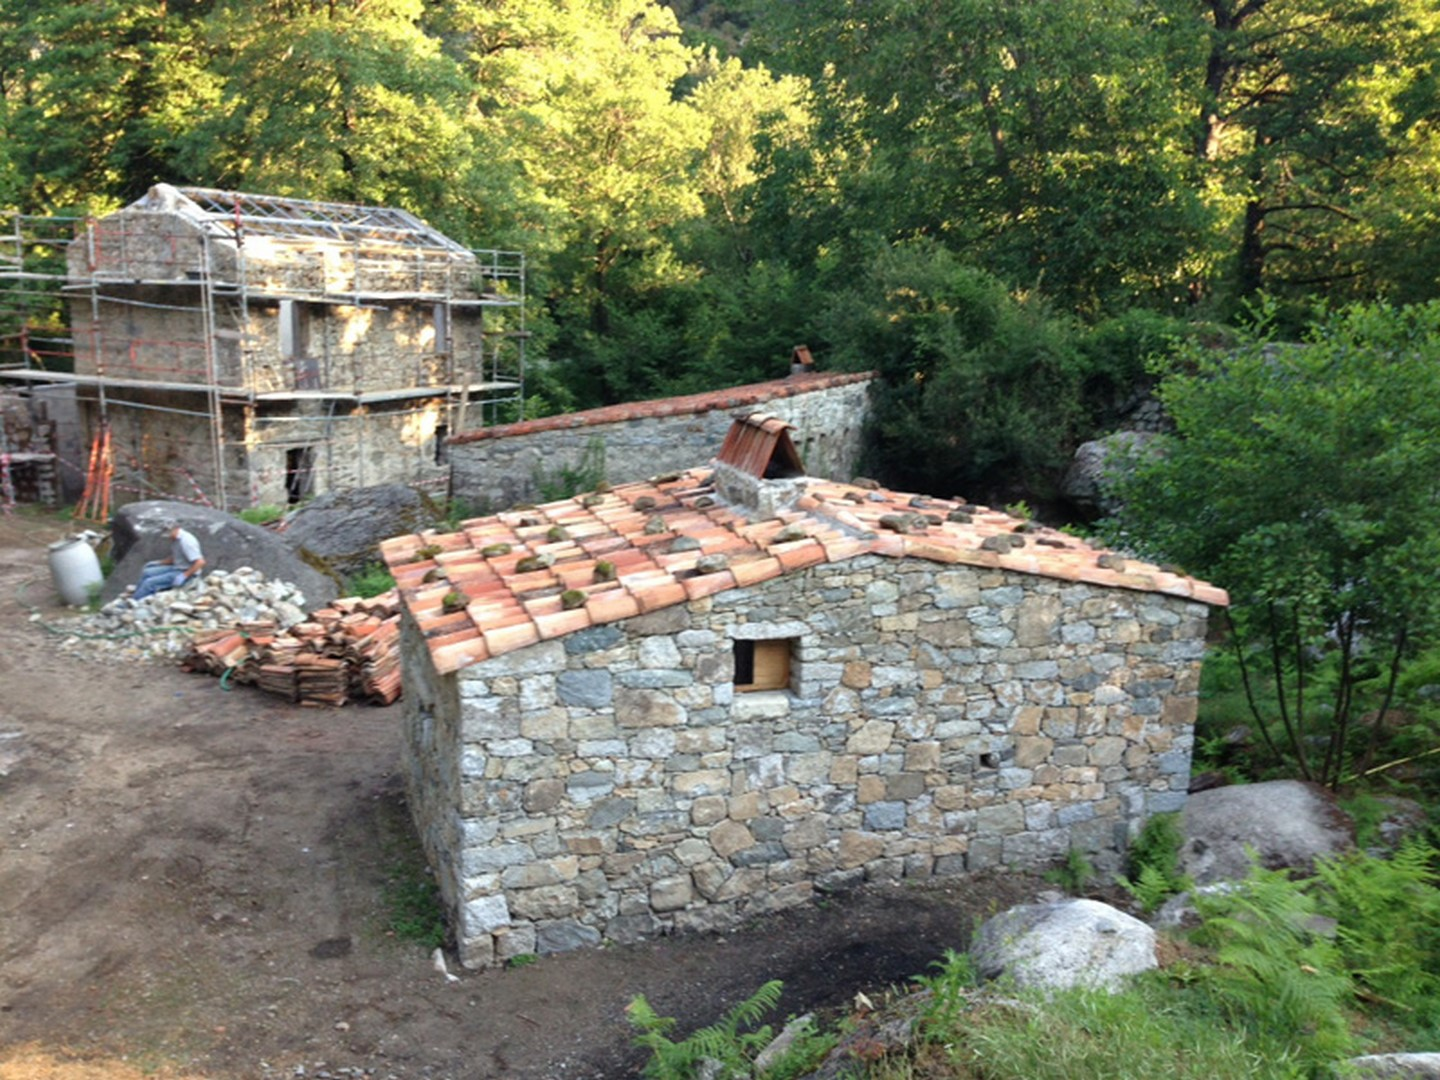 renovation-maison-en-pierre-corse-3